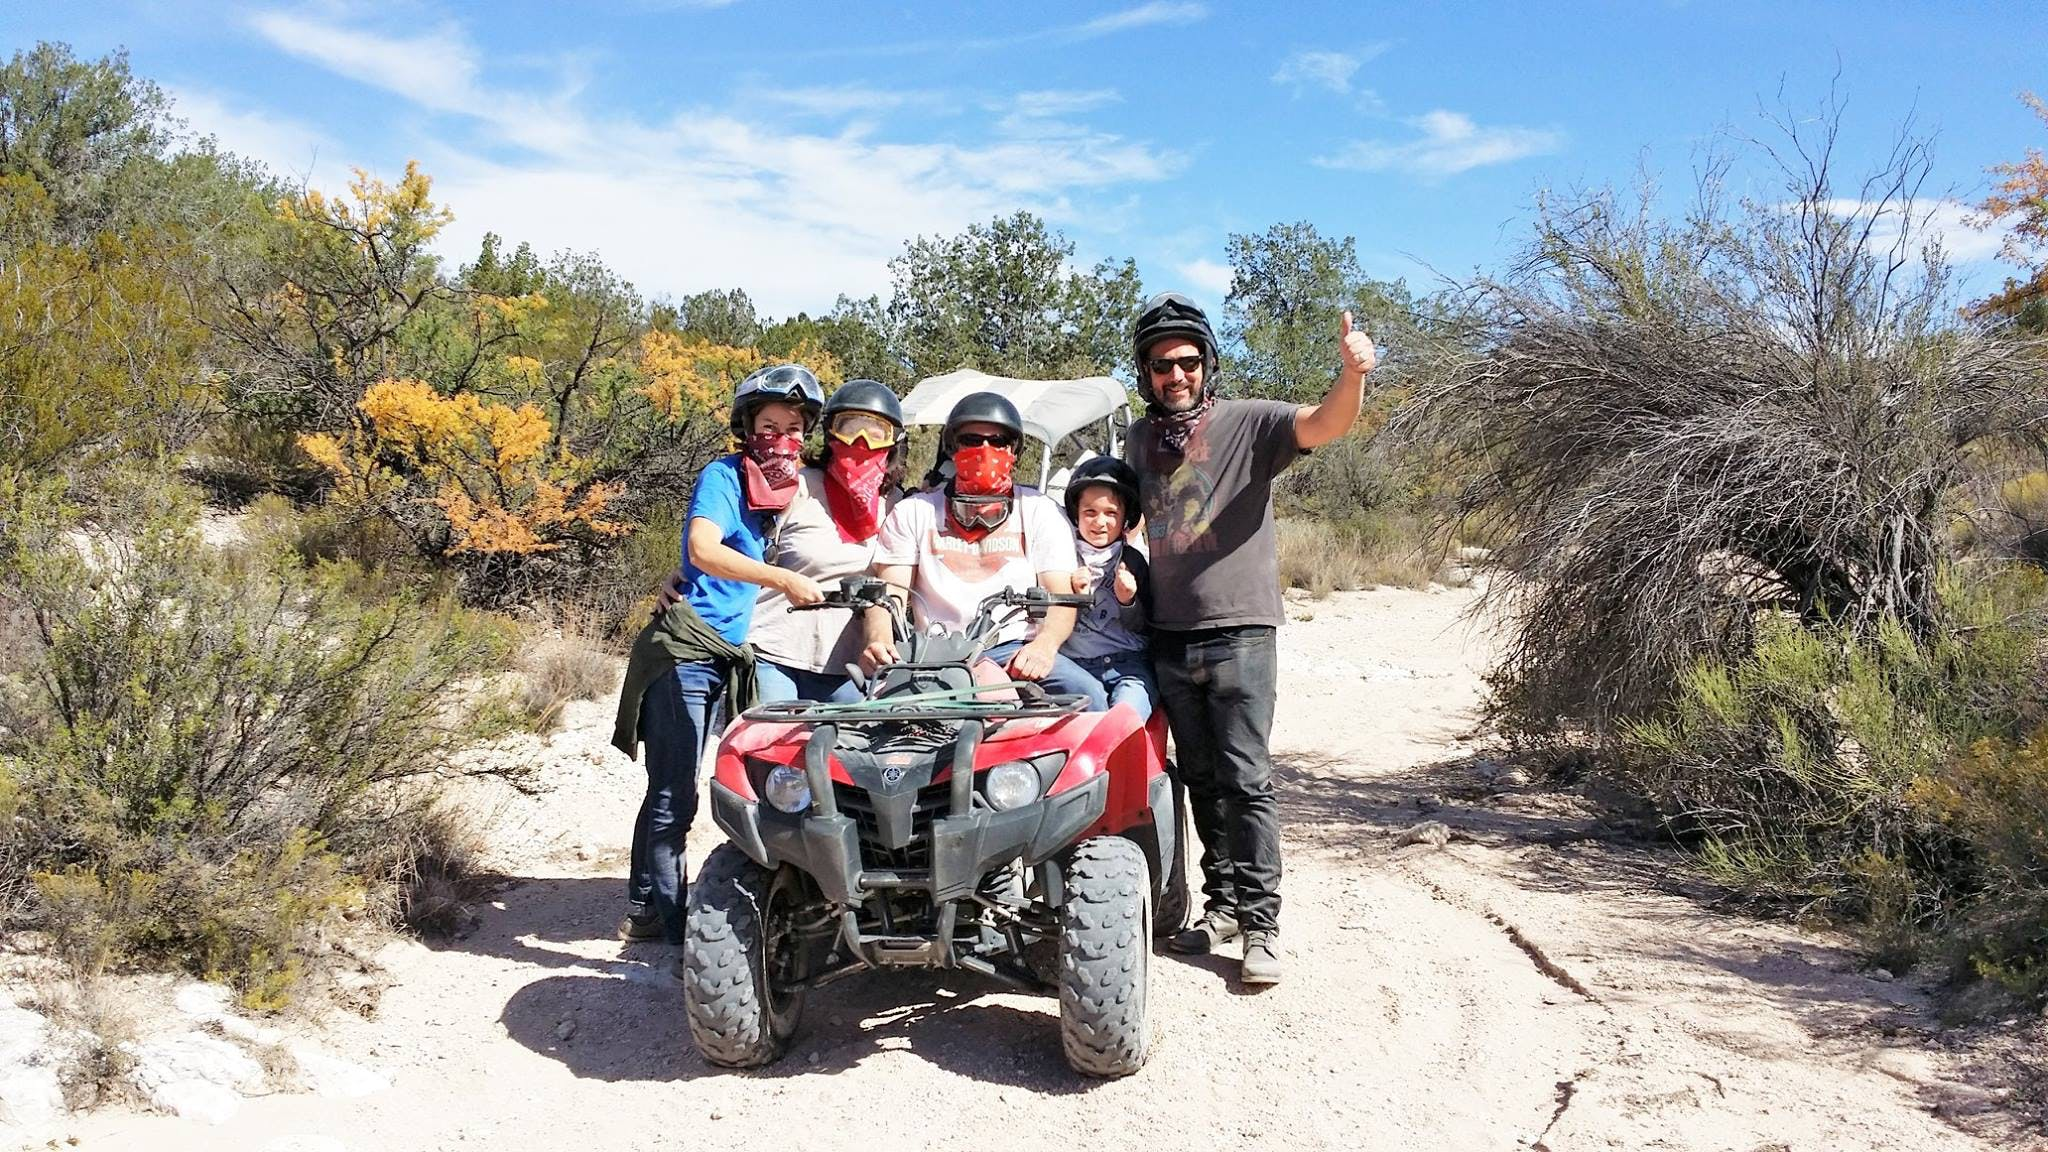 Arizona Offroad tours